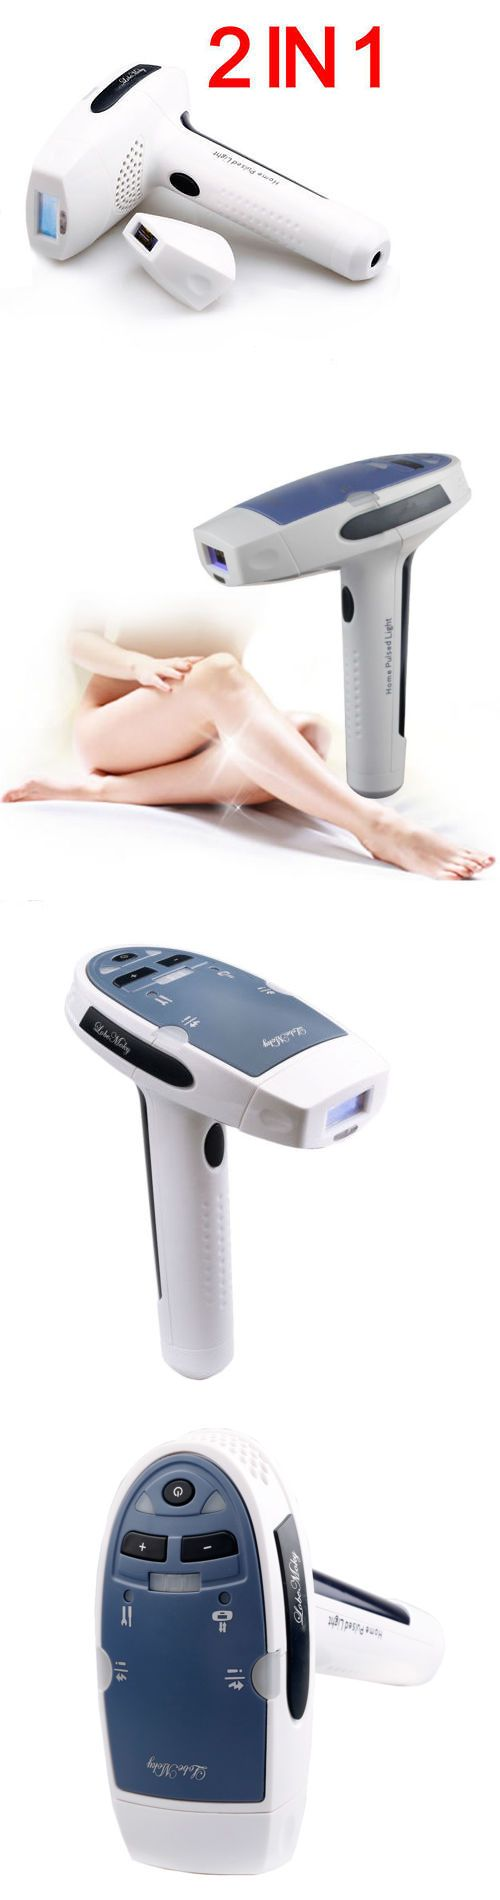 Laser Hair Removal and IPL: 2 In 1 Laser Ipl Permanent Hair Removal Machine For Faceand Body Beauty Epilator -> BUY IT NOW ONLY: $71.99 on eBay!